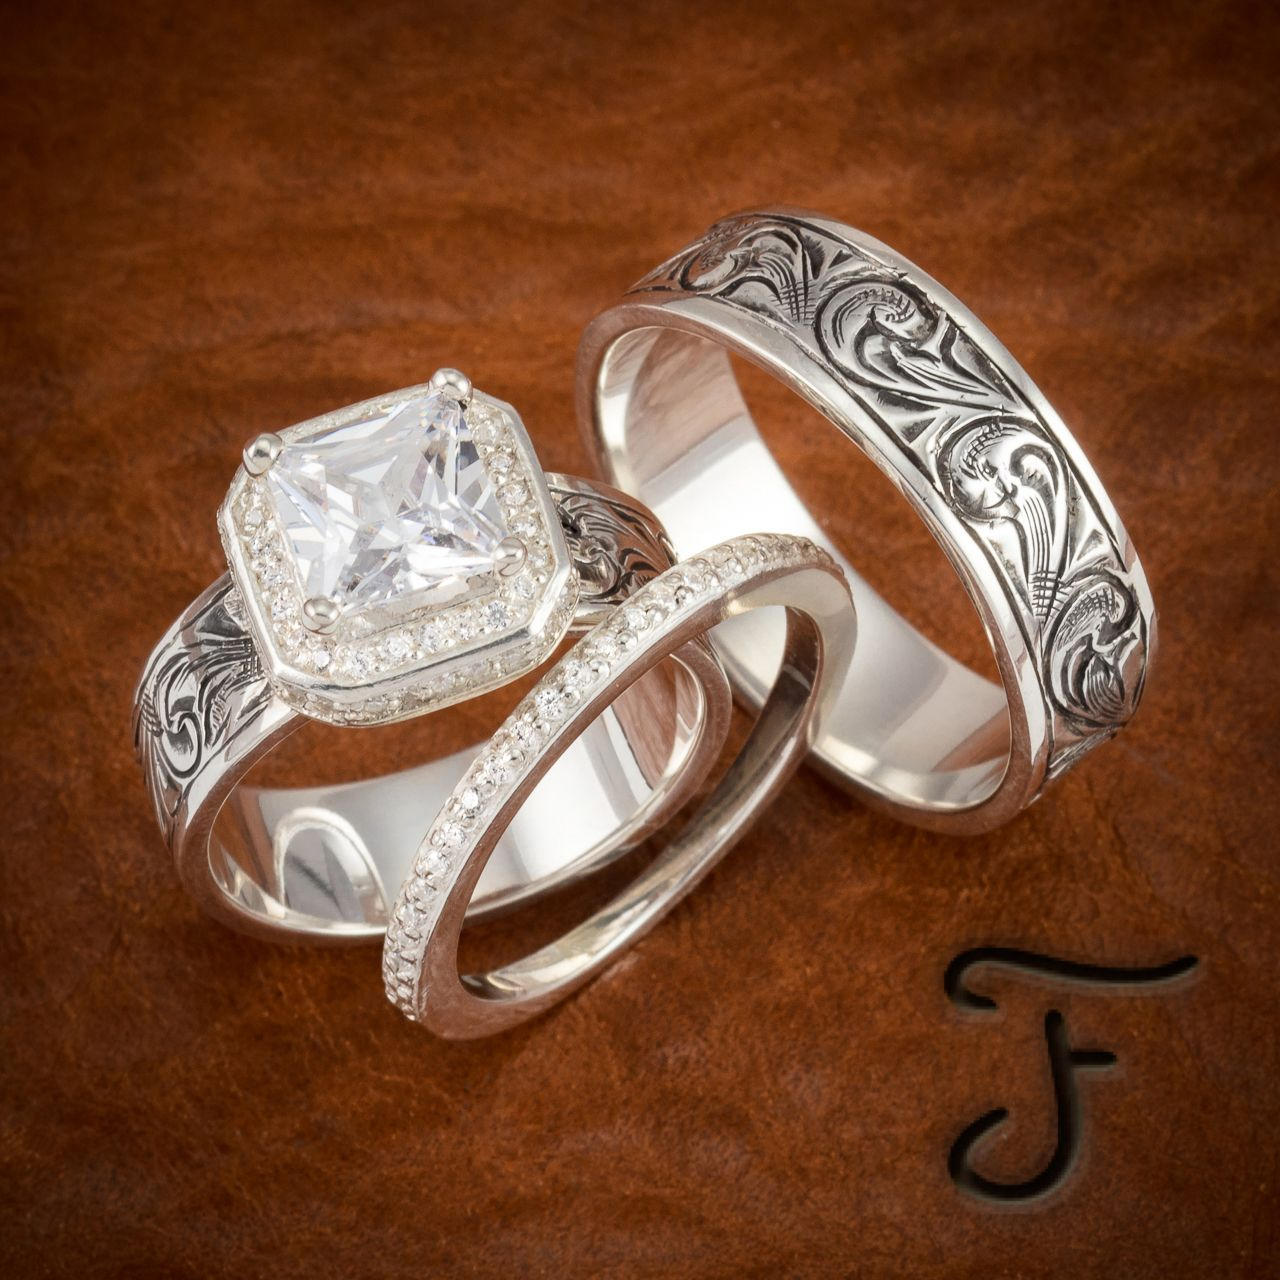 The Right Western Wedding Bands Will Suit Both You And Your Partner S Styles Making You Fee Western Wedding Rings Western Wedding Bands Matching Wedding Rings